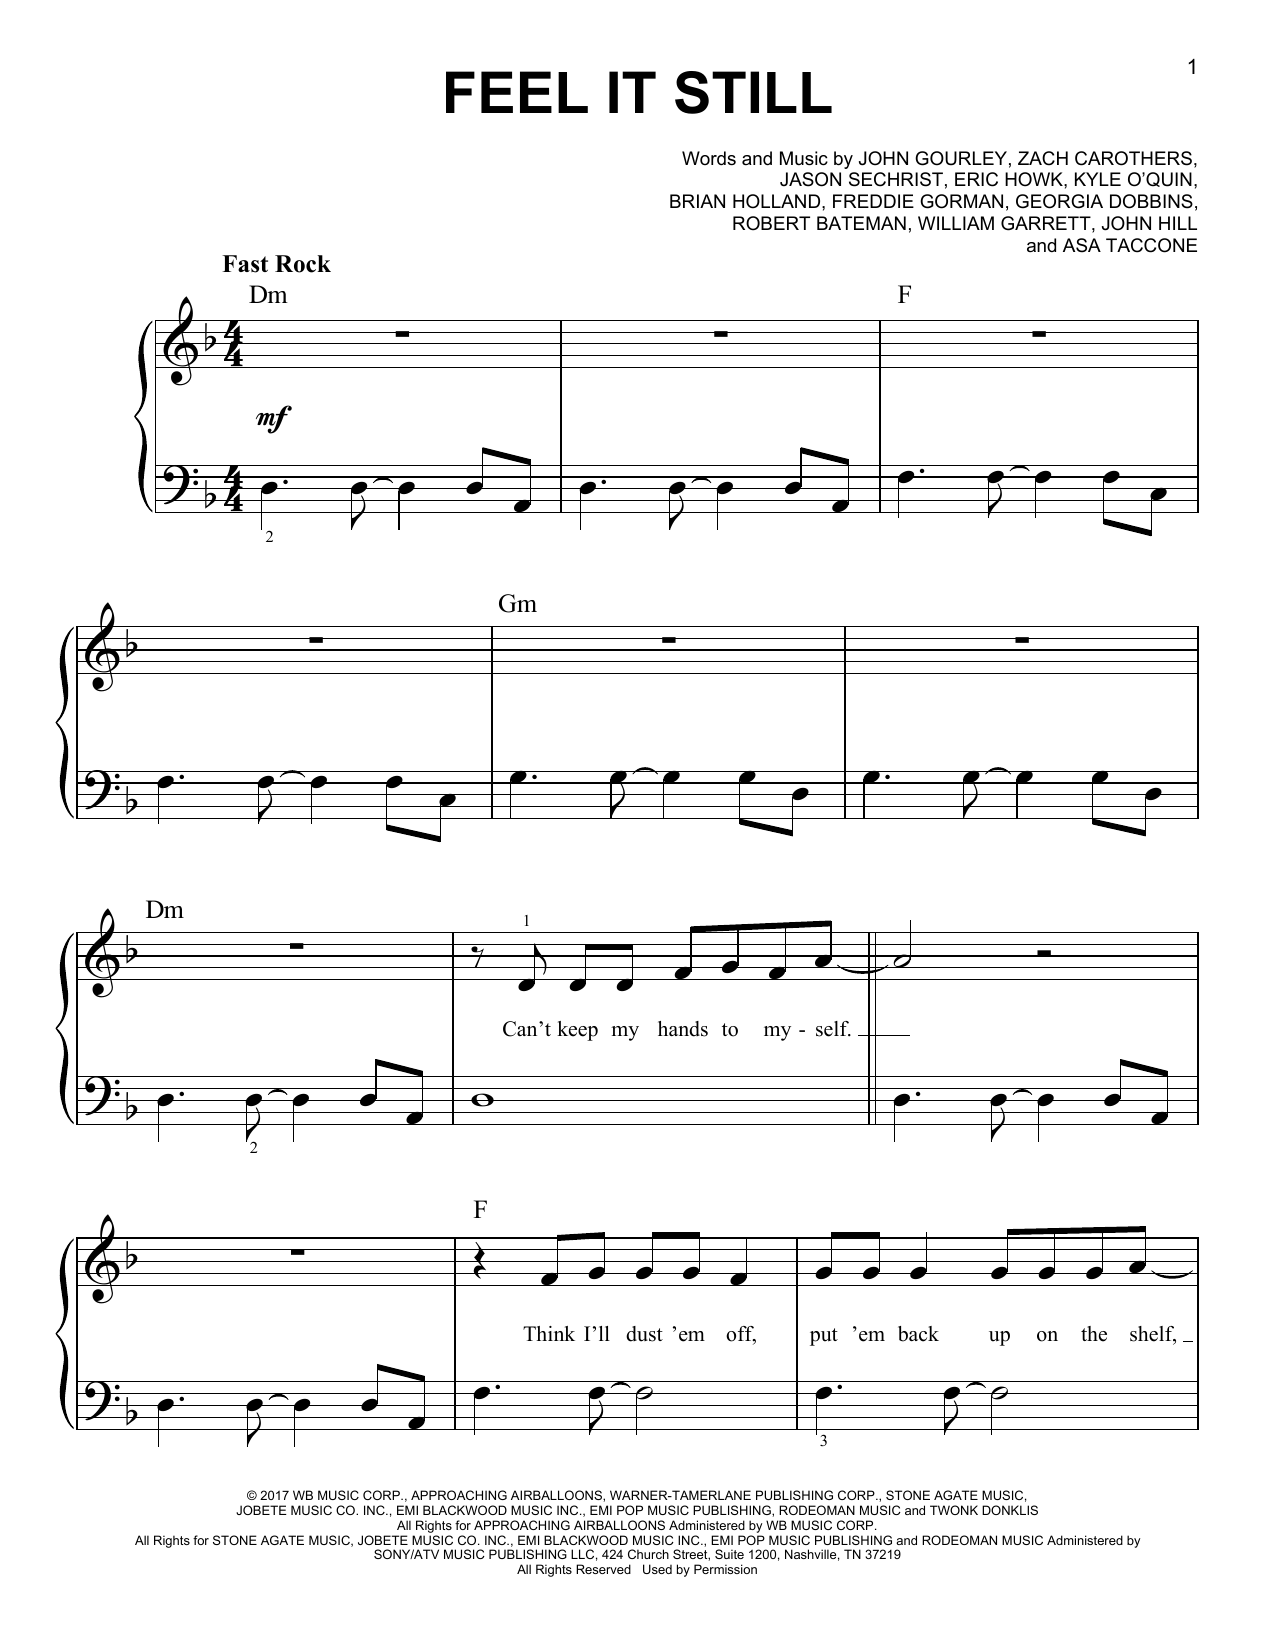 Sheet Music Digital Files To Print - Licensed William